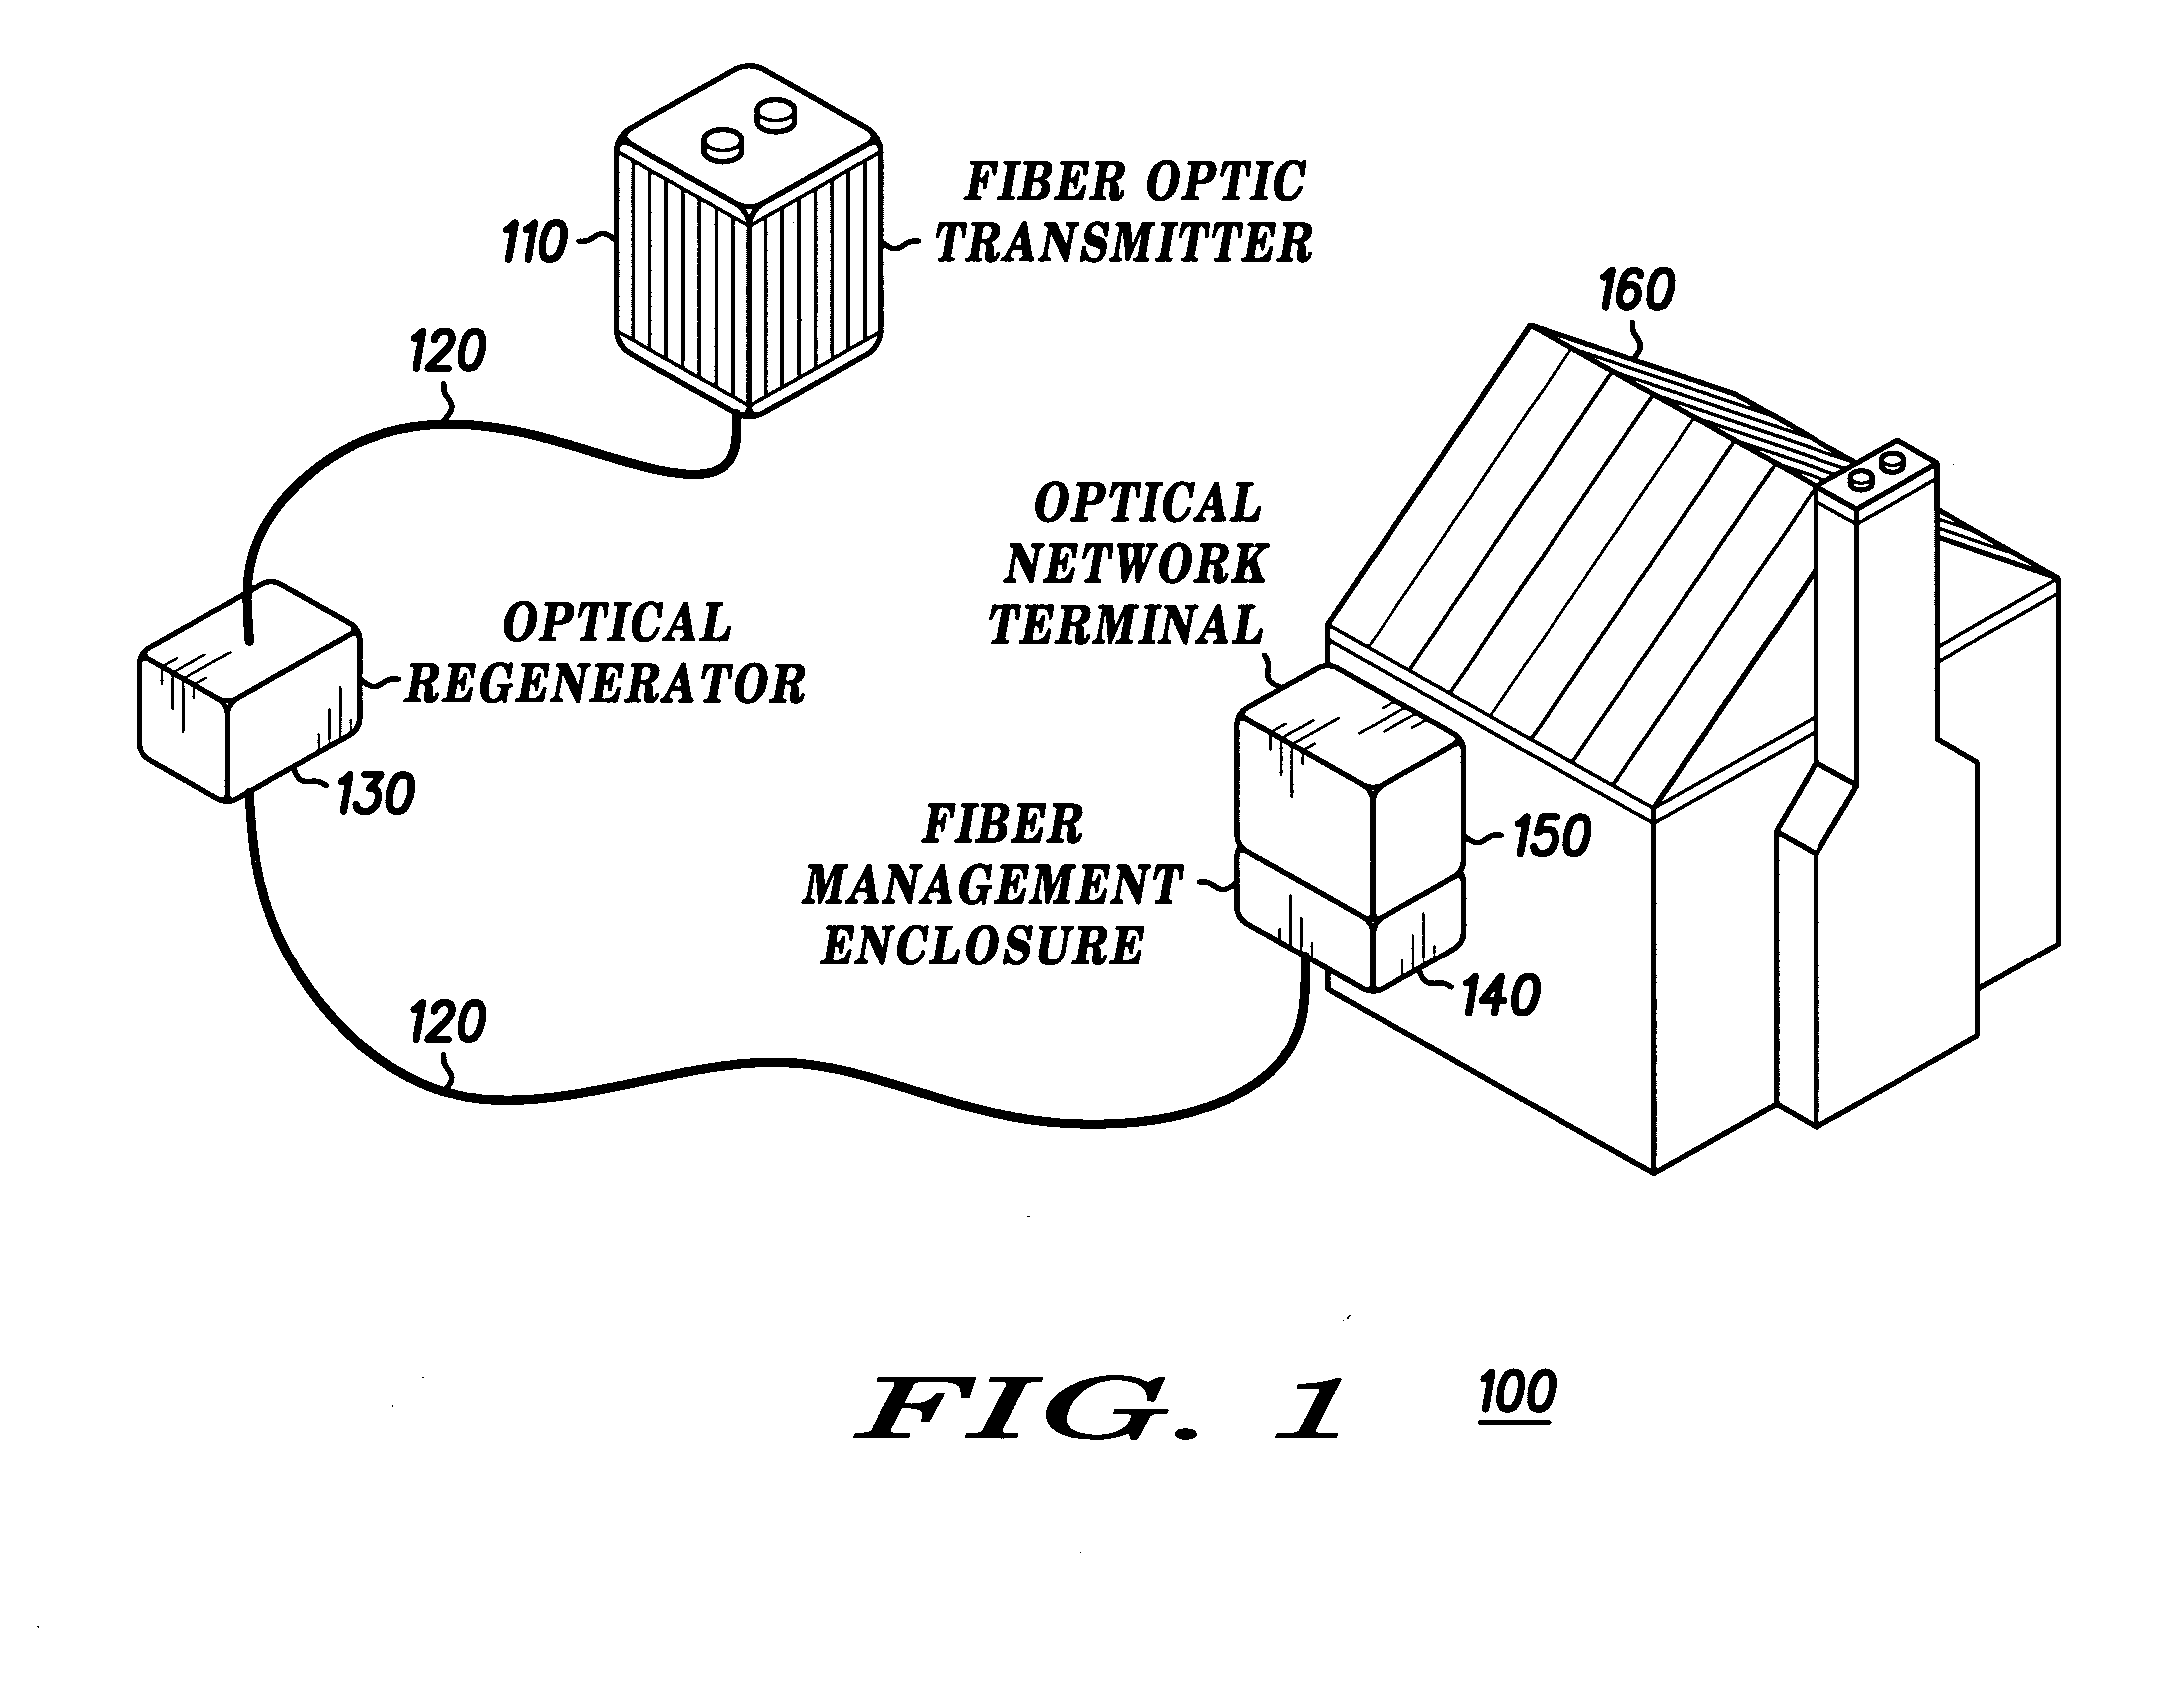 patent us20050094959 - fiber optic cable managemetn enclosure and method of use